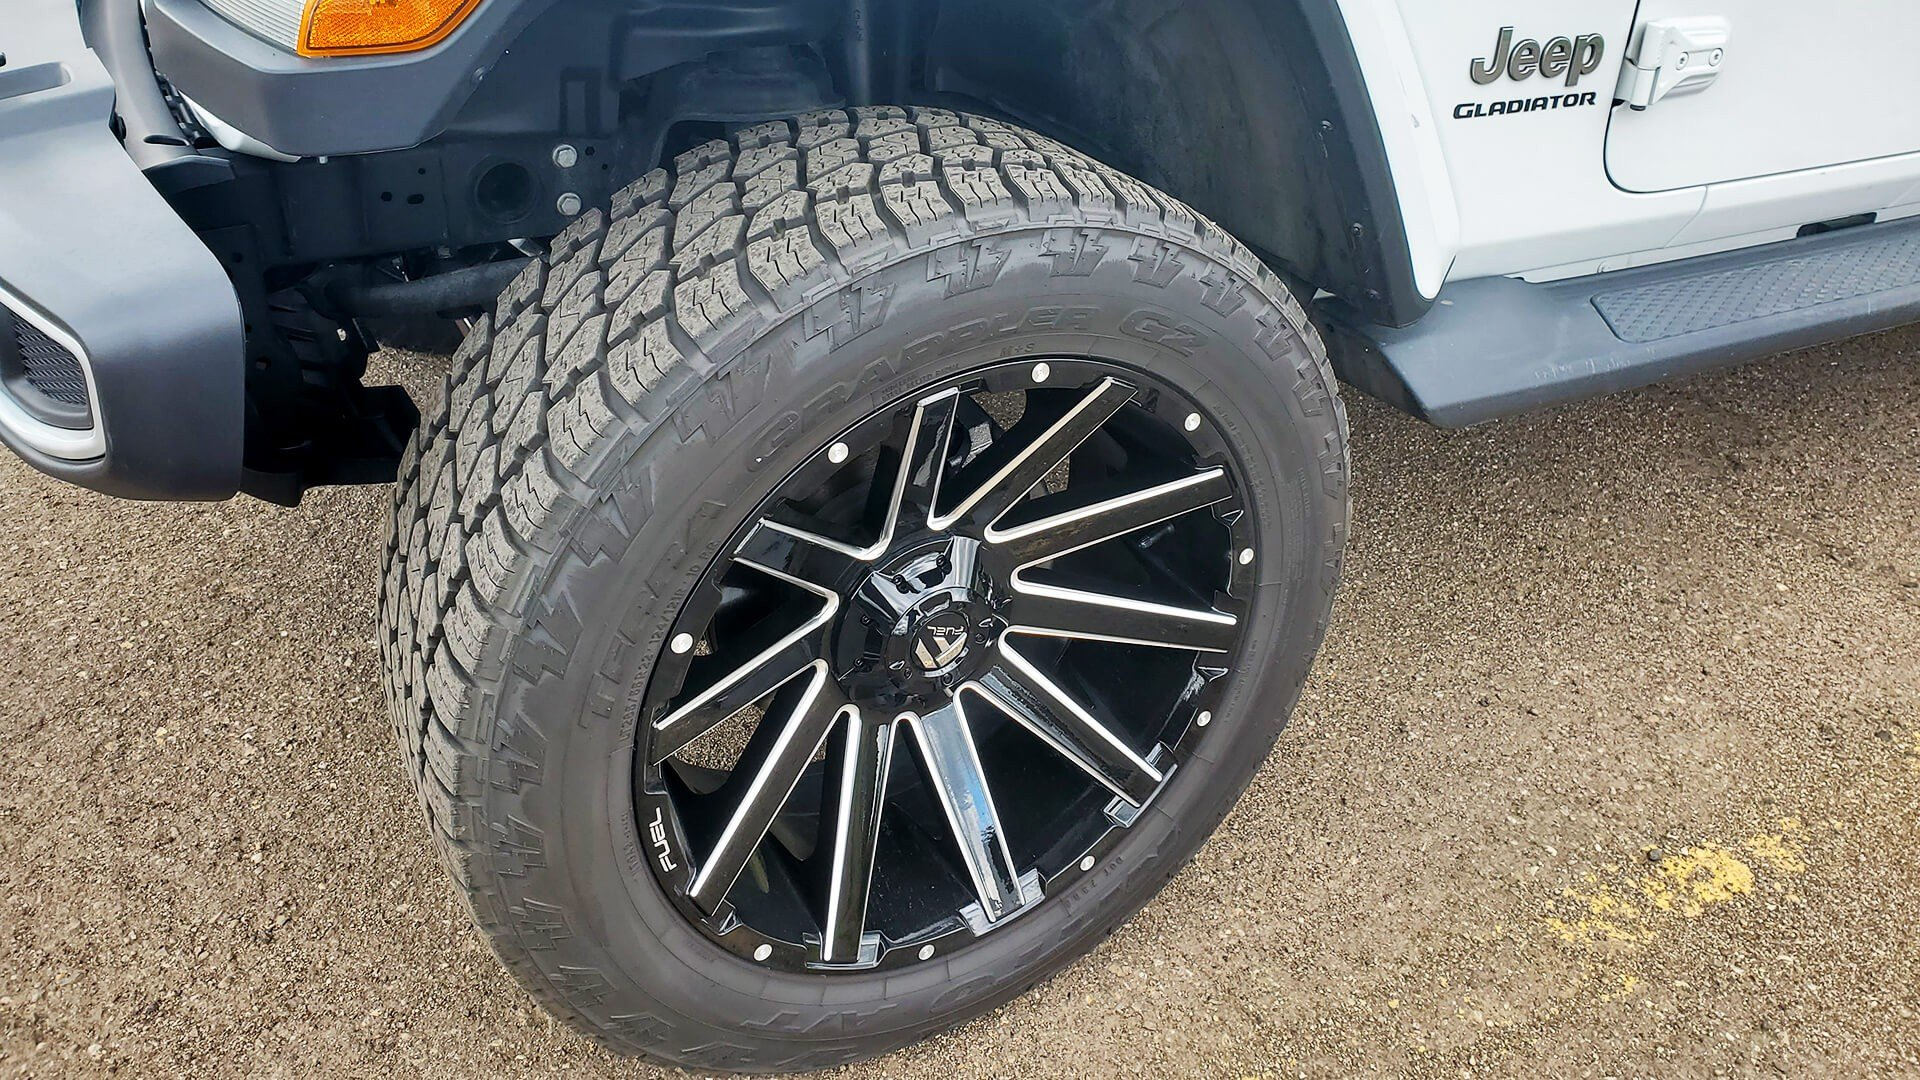 Tires and wheels on a new Jeep Gladiator